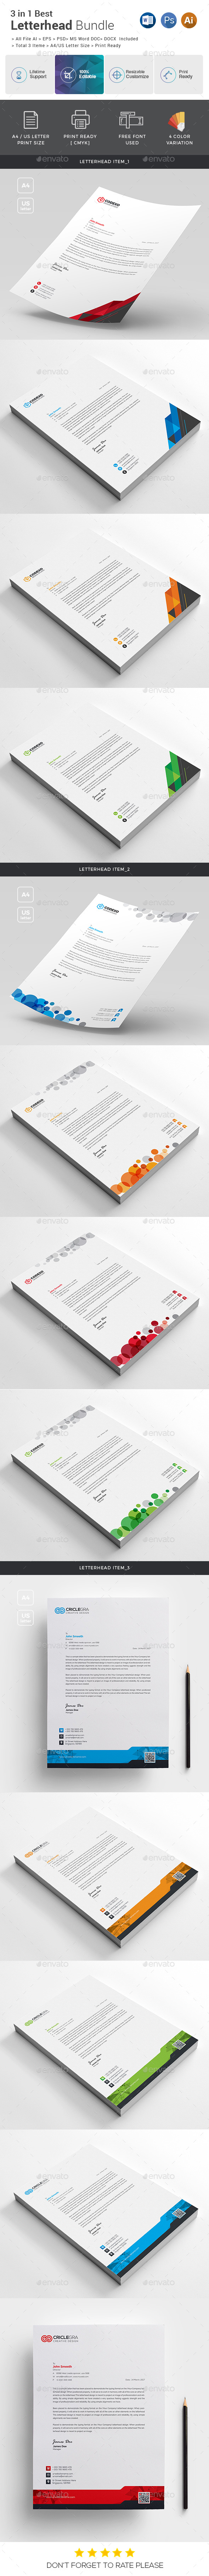 Letterhead Bundle_ 3 in 1 - Stationery Print Templates